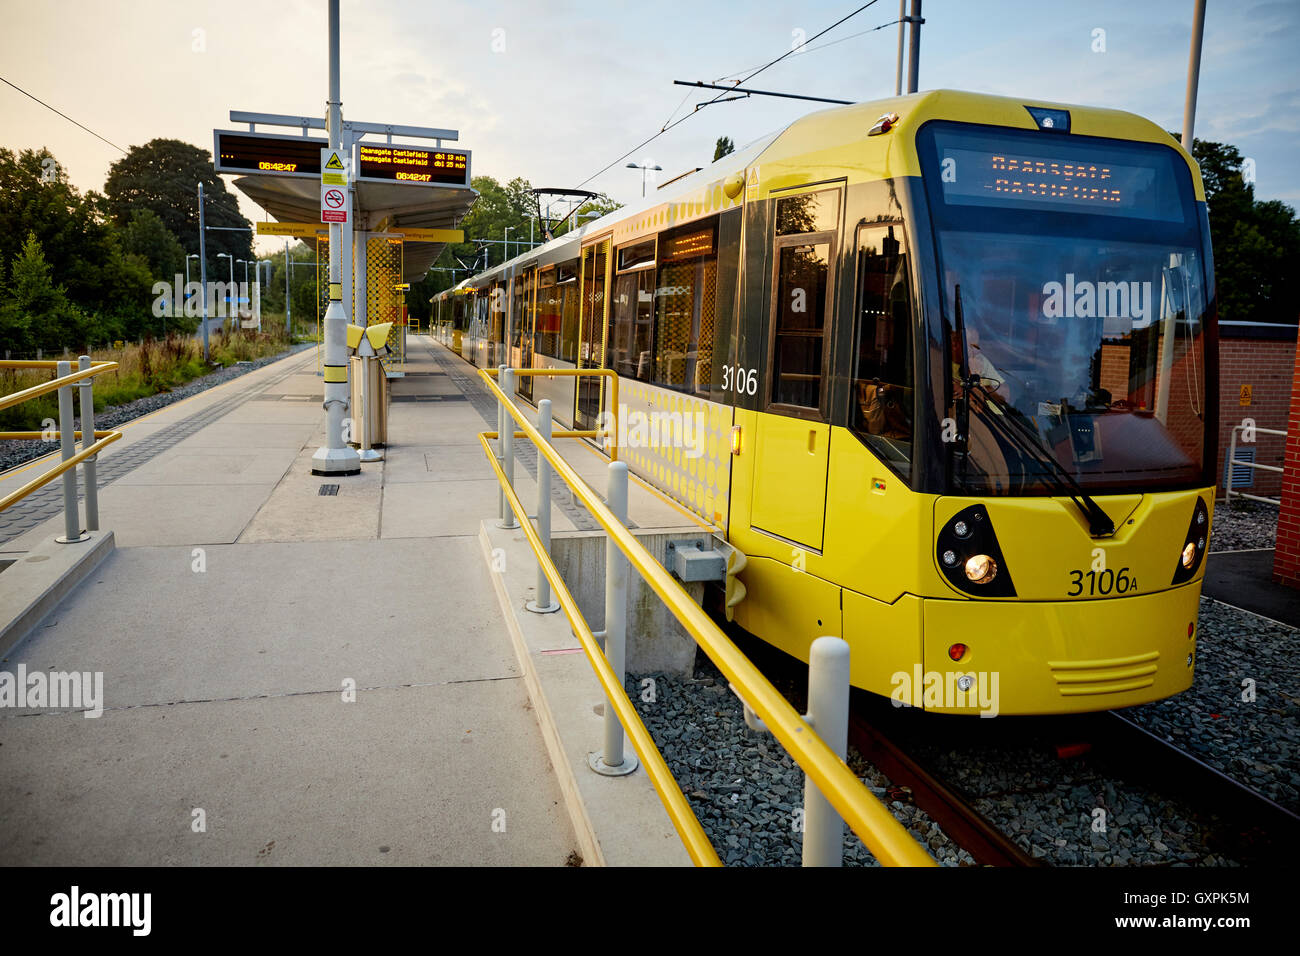 tram-stopped-caption